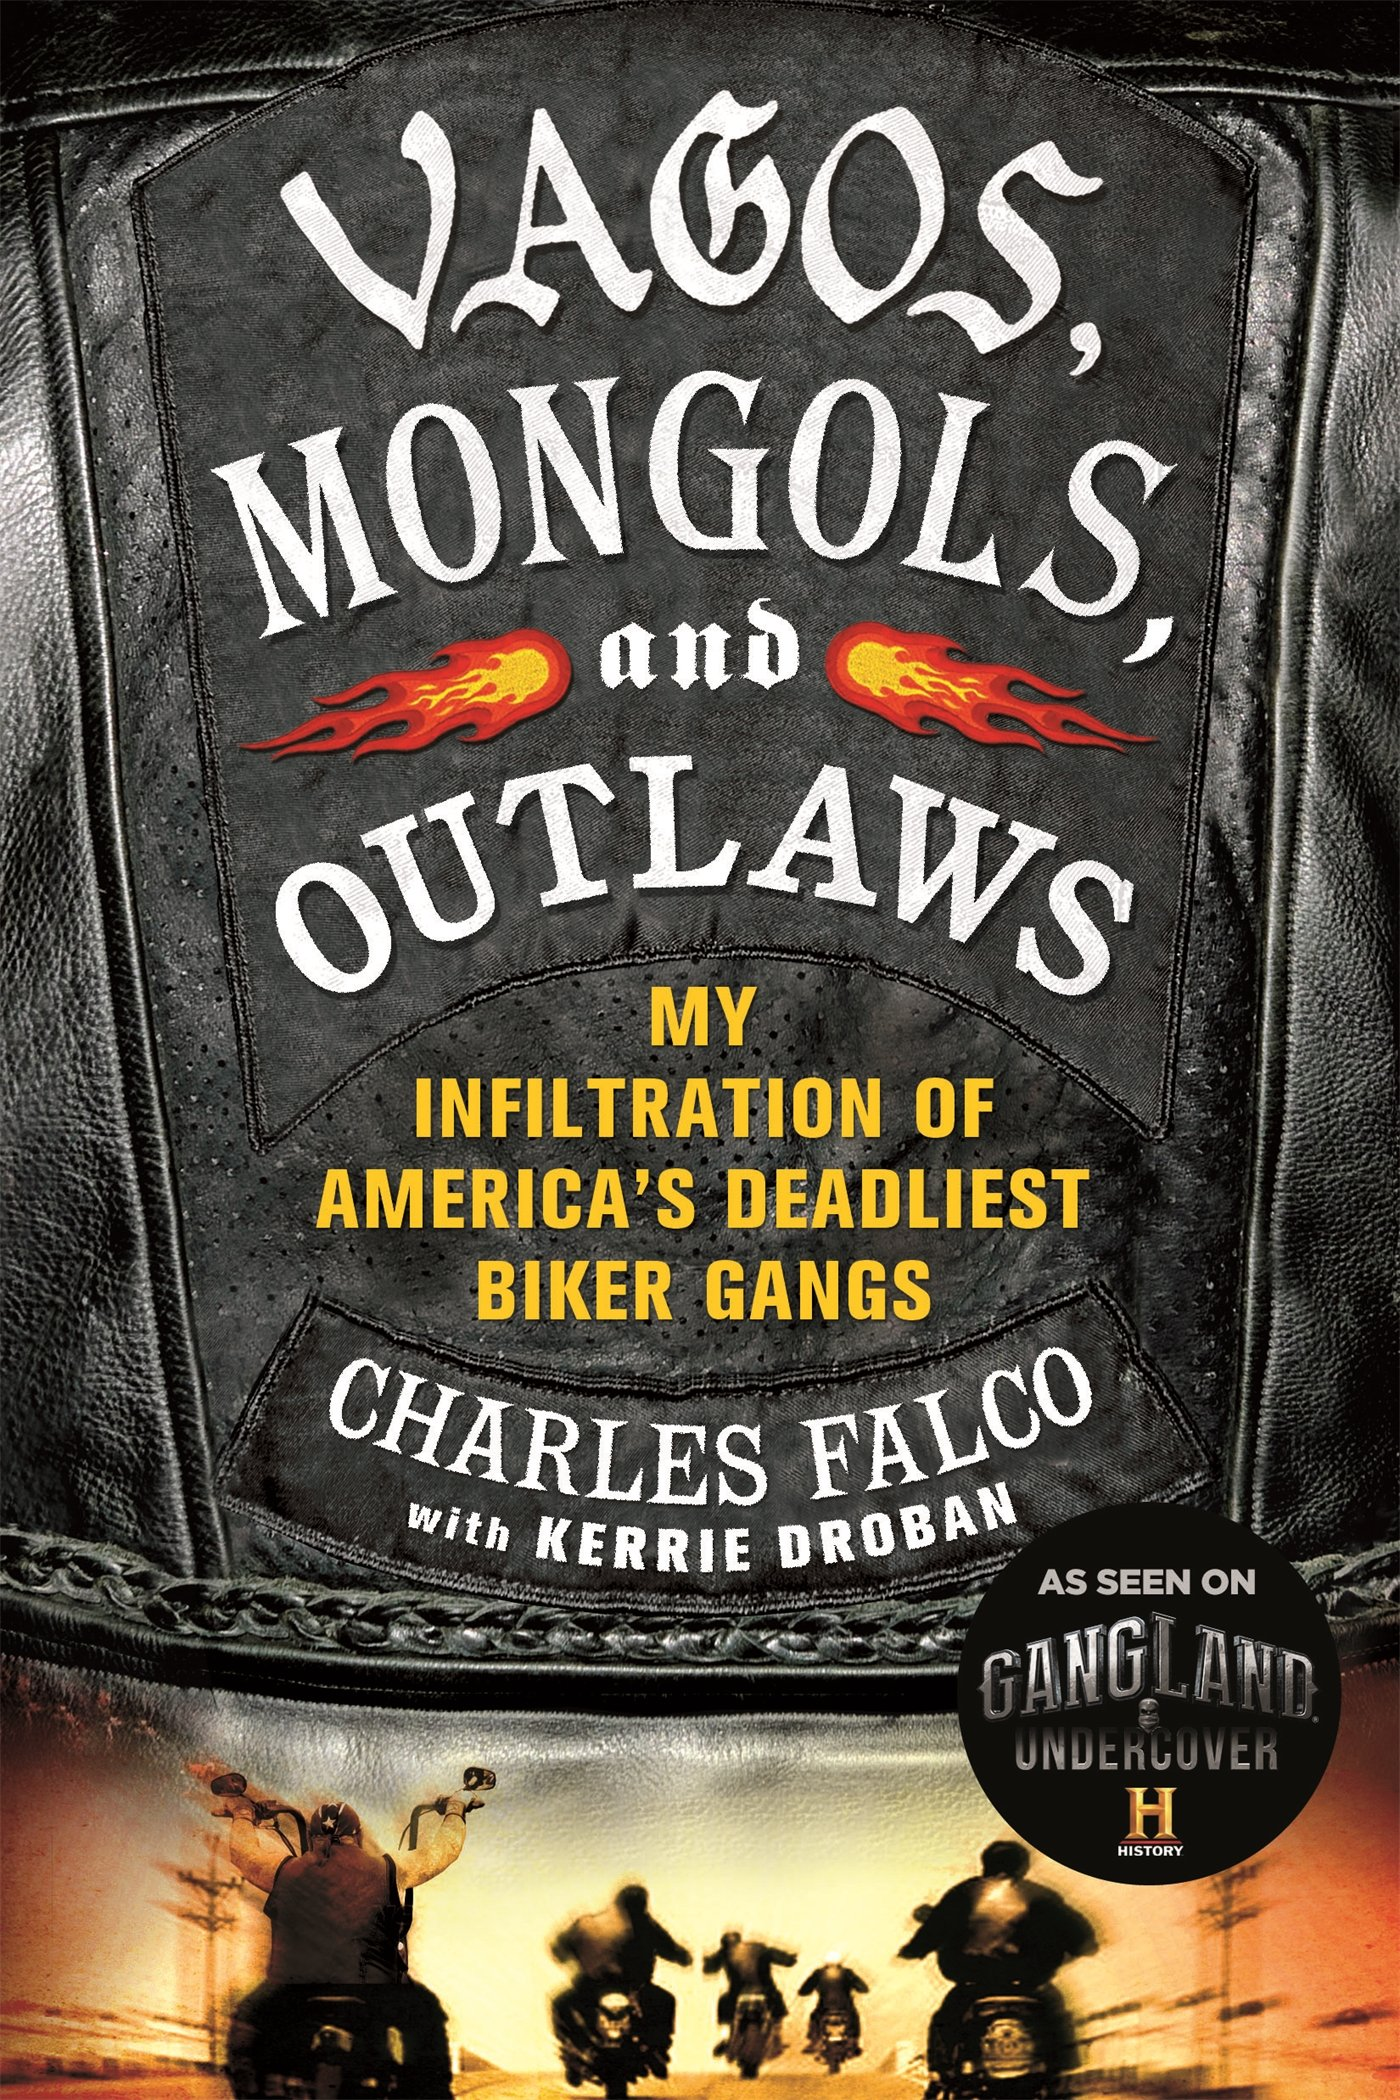 Vagos, Mongols, and Outlaws: My Infiltration of America's